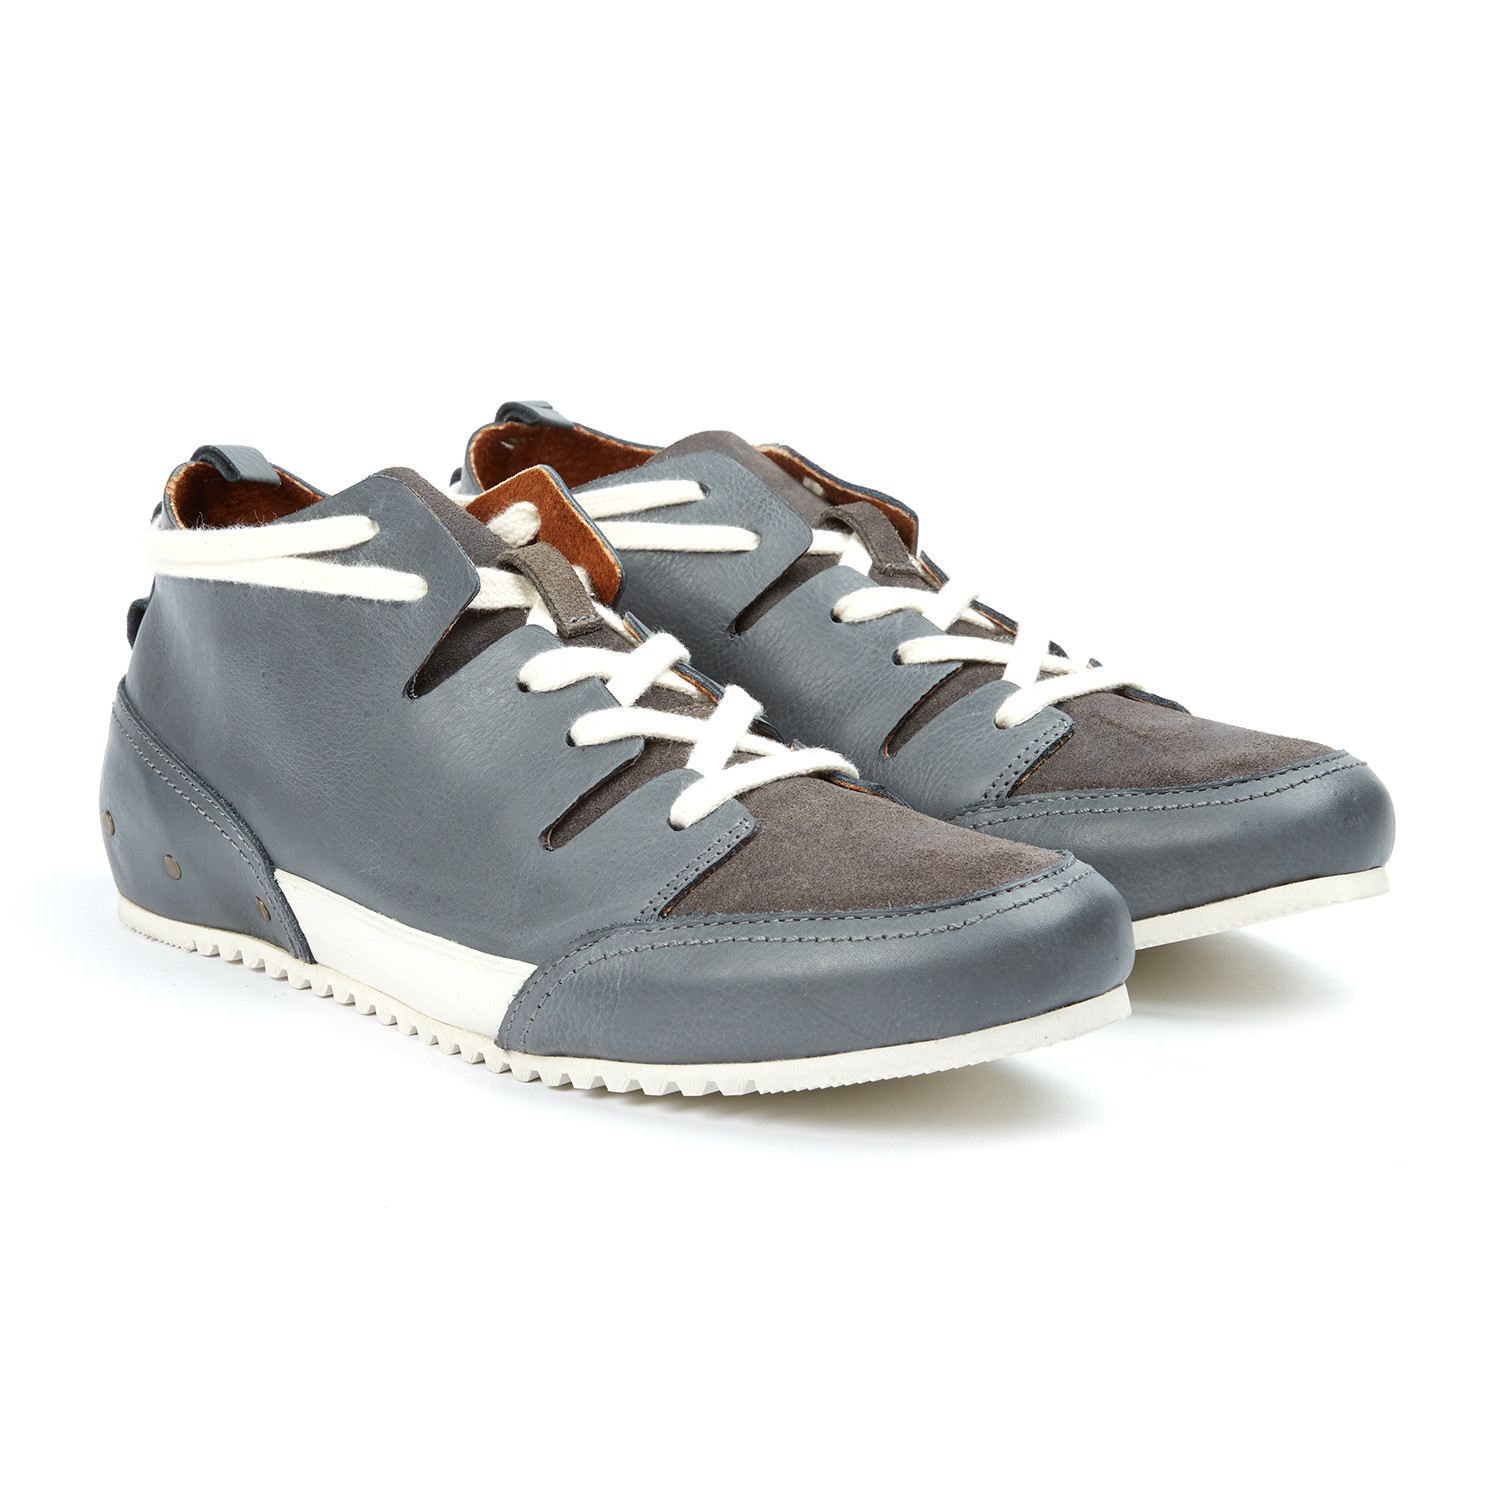 e7e06219792dc1 MCNDO    Champs Leather Sneaker    Grey (US  7) - MCNDO - Touch of ...